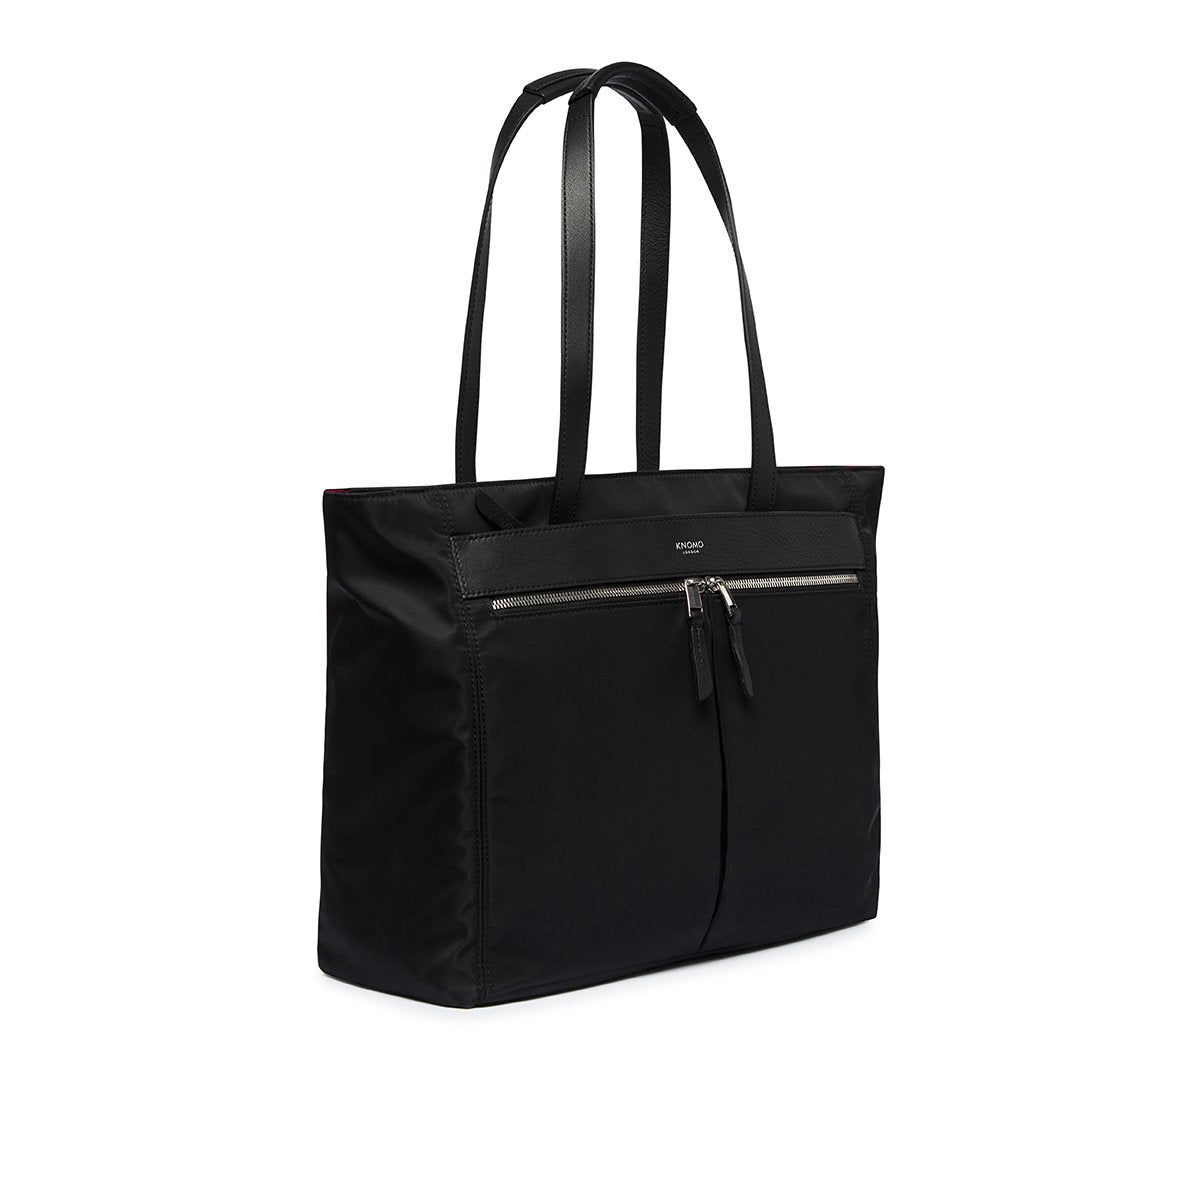 "Grosvenor Place Laptop Tote Bag - 14"" -  